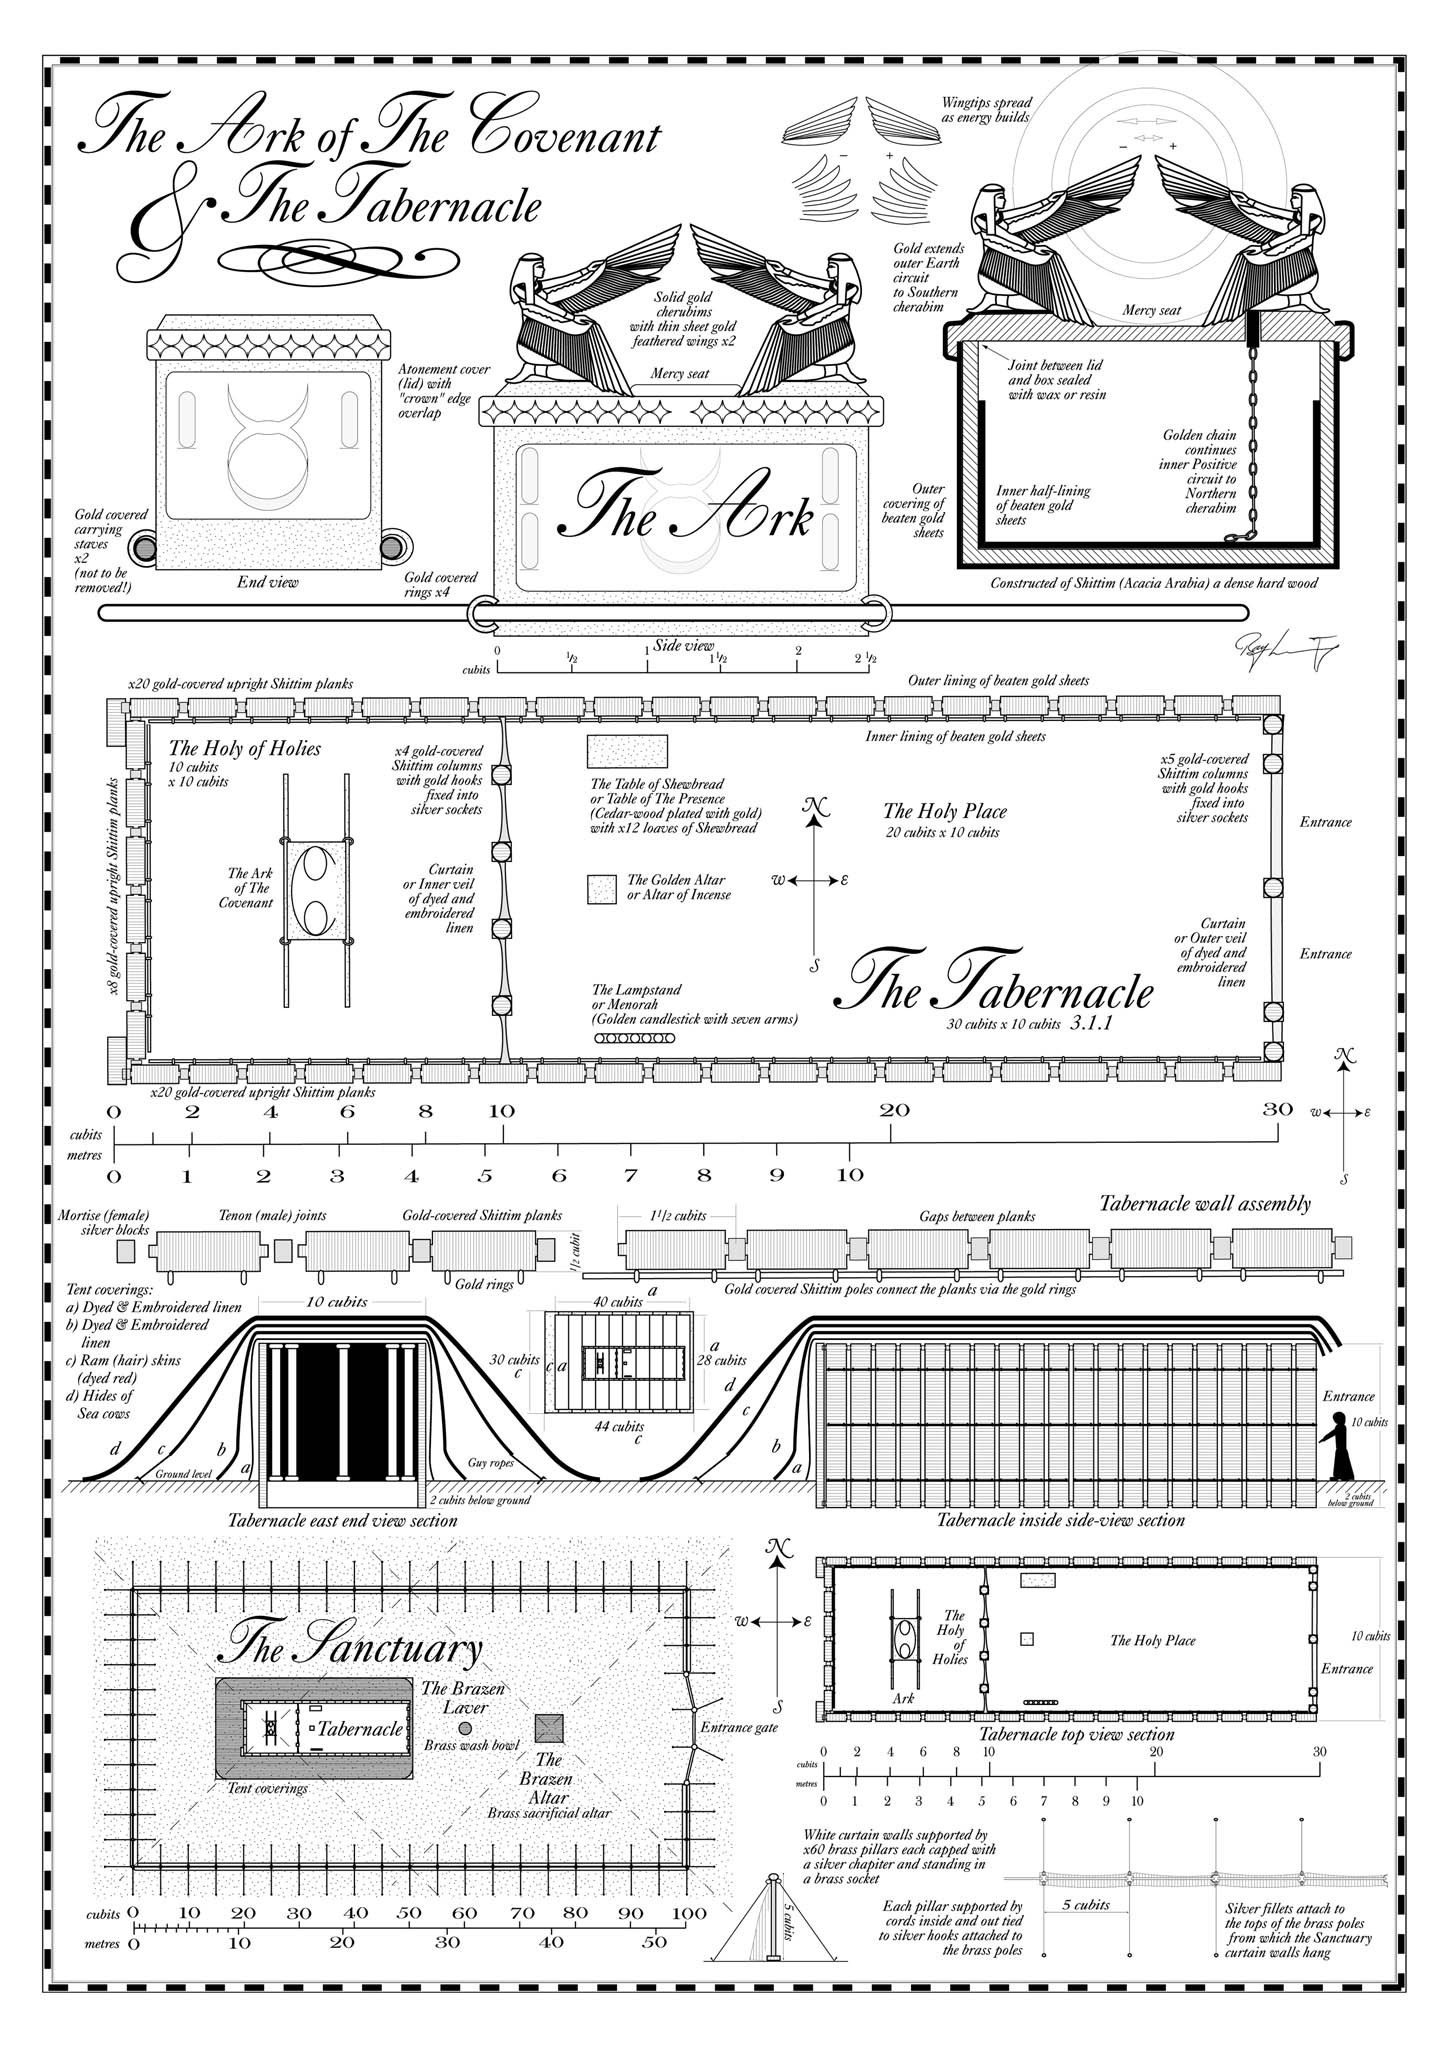 Tabernacle Bible Coloring Pages. Christian New Year Coloring Pages - Free Printable Pictures Of The Tabernacle